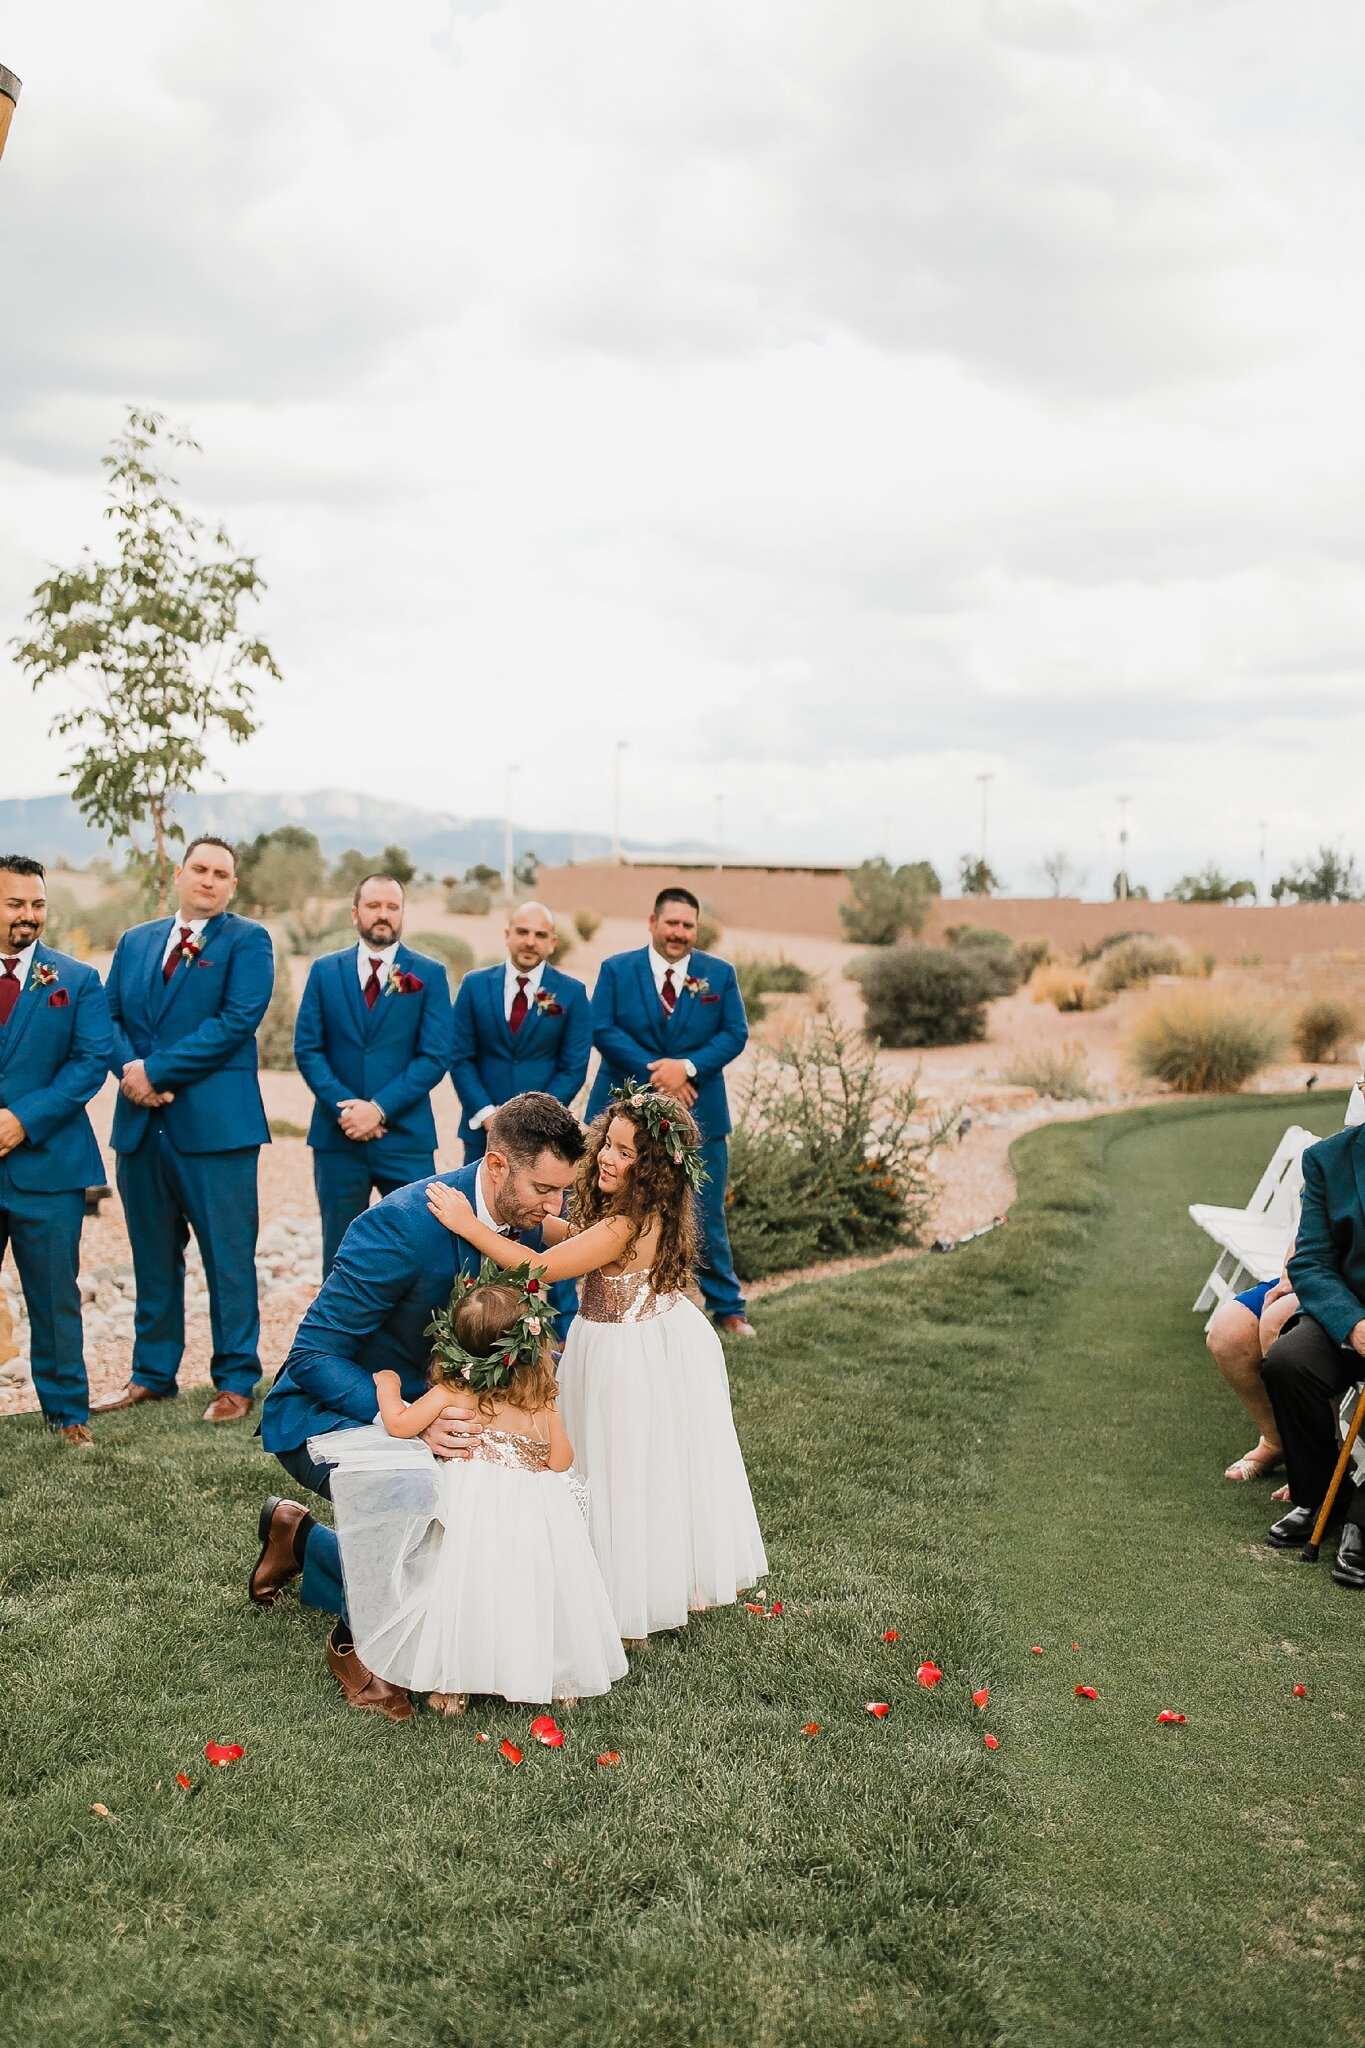 Alicia+lucia+photography+-+albuquerque+wedding+photographer+-+santa+fe+wedding+photography+-+new+mexico+wedding+photographer+-+new+mexico+wedding+-+albuquerque+wedding+-+sandia+wedding+-+sandia+event+center+wedding_0041.jpg